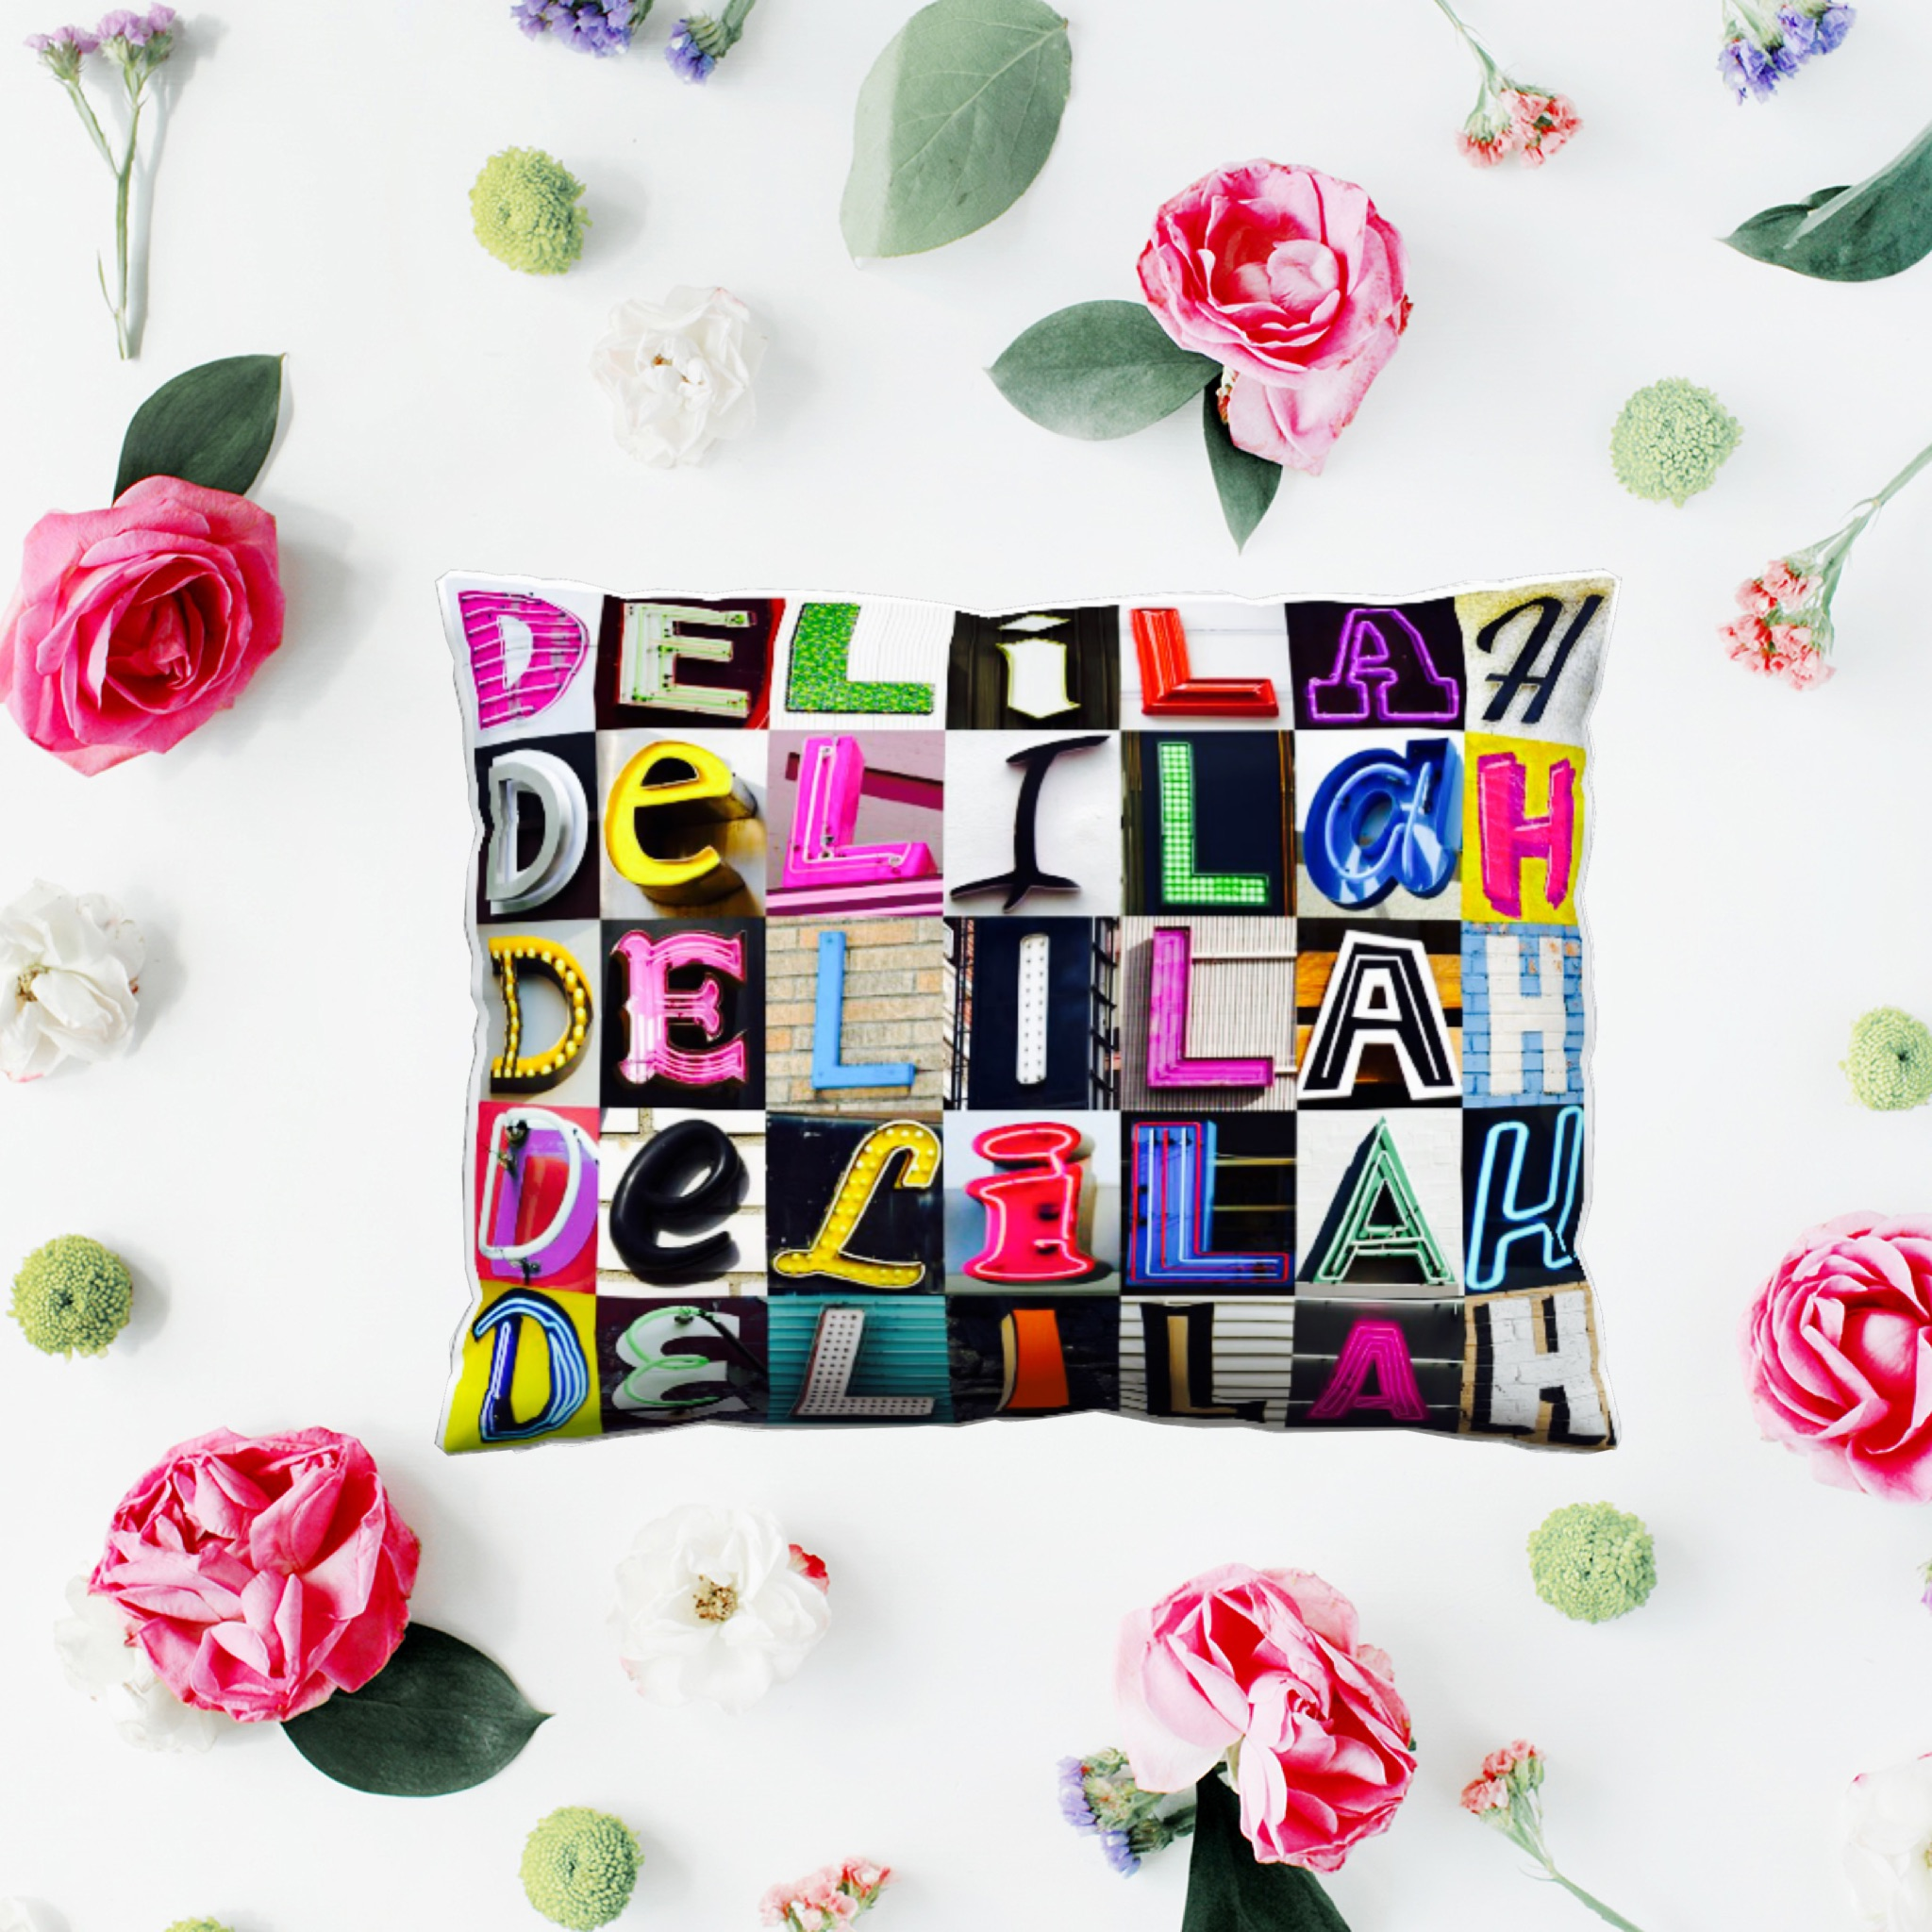 https://www.etsy.com/listing/476193803/personalized-pillow-featuring-delilah-in